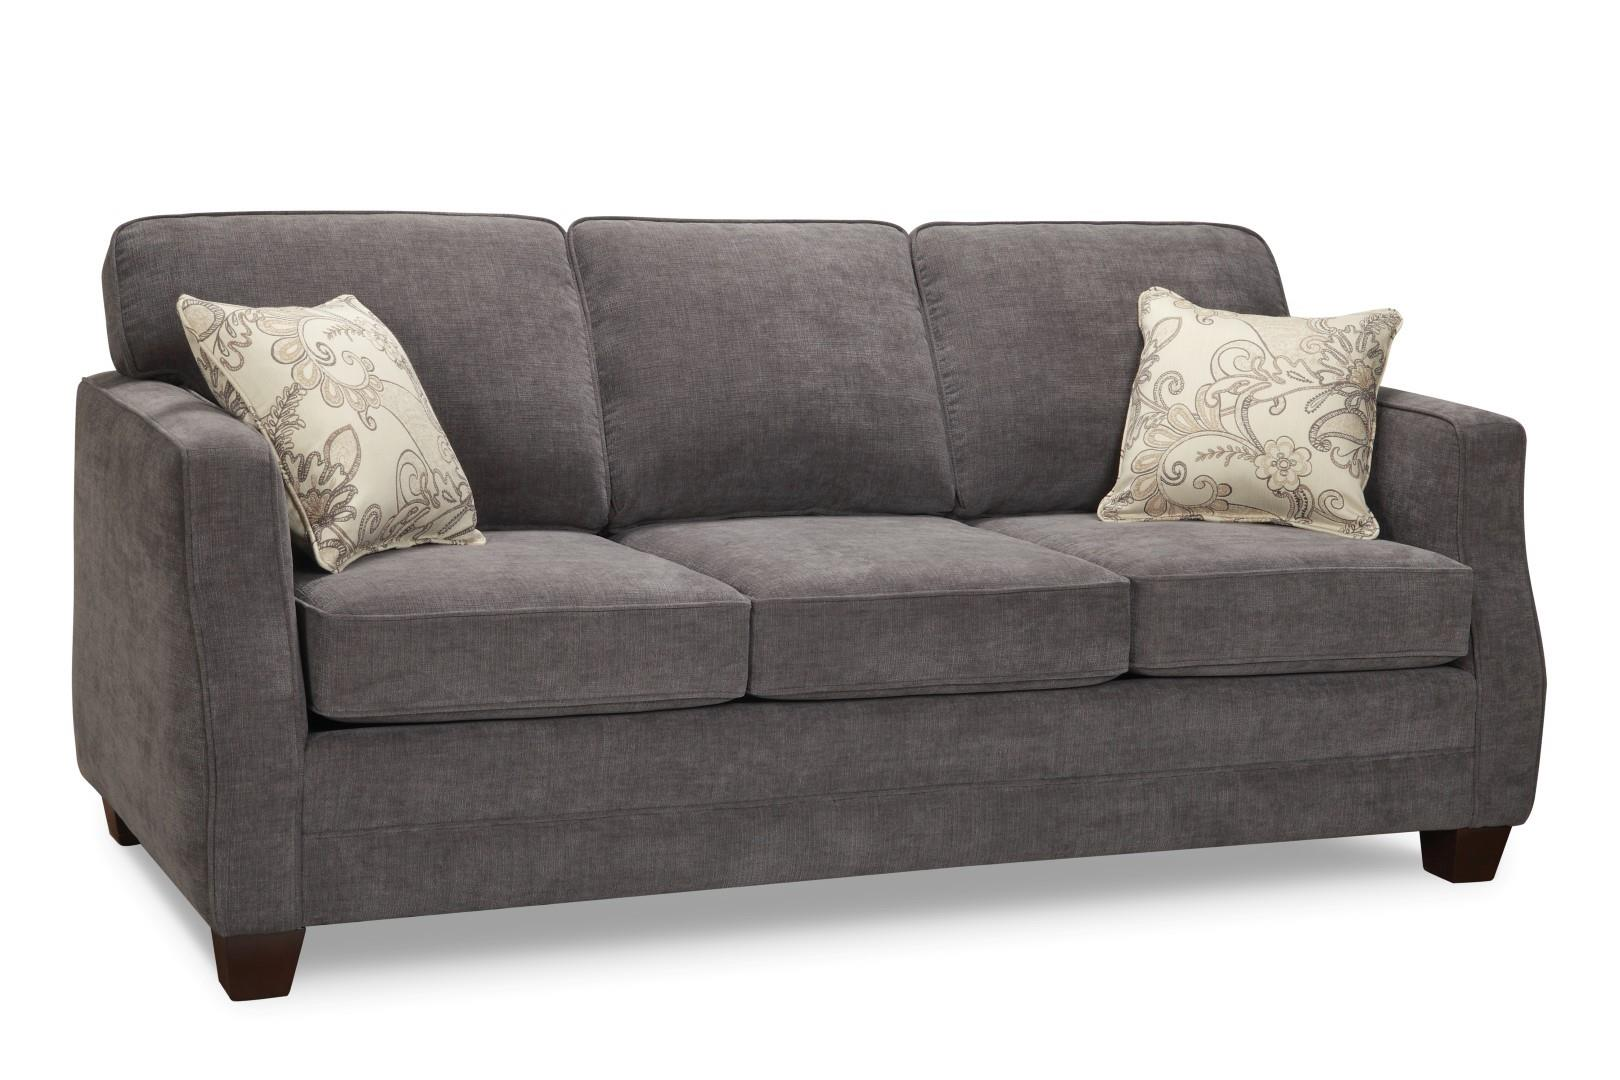 "Superstyle 9539 74"" Upholstered Sofa - Item Number: 9539"